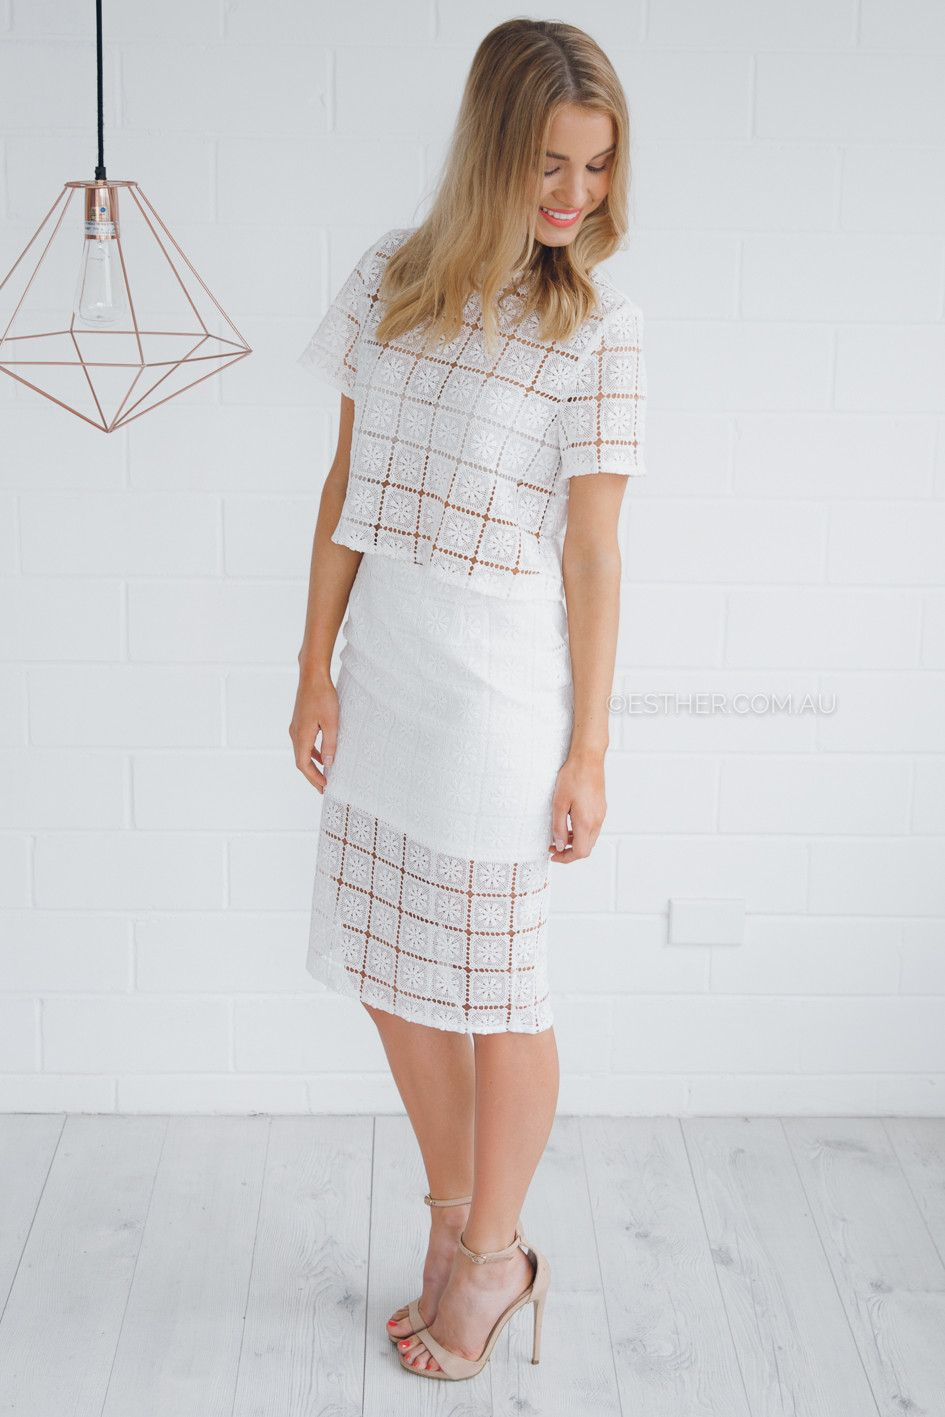 fia lace two piece - white | Esther clothing Australia and America USA, boutique online ladies fashion store, shop global womens wear worldwide, designer womenswear, prom dresses, skirts, jackets, leggings, tights, leather shoes, accessories, fast shipping world wide. – Esther Boutique